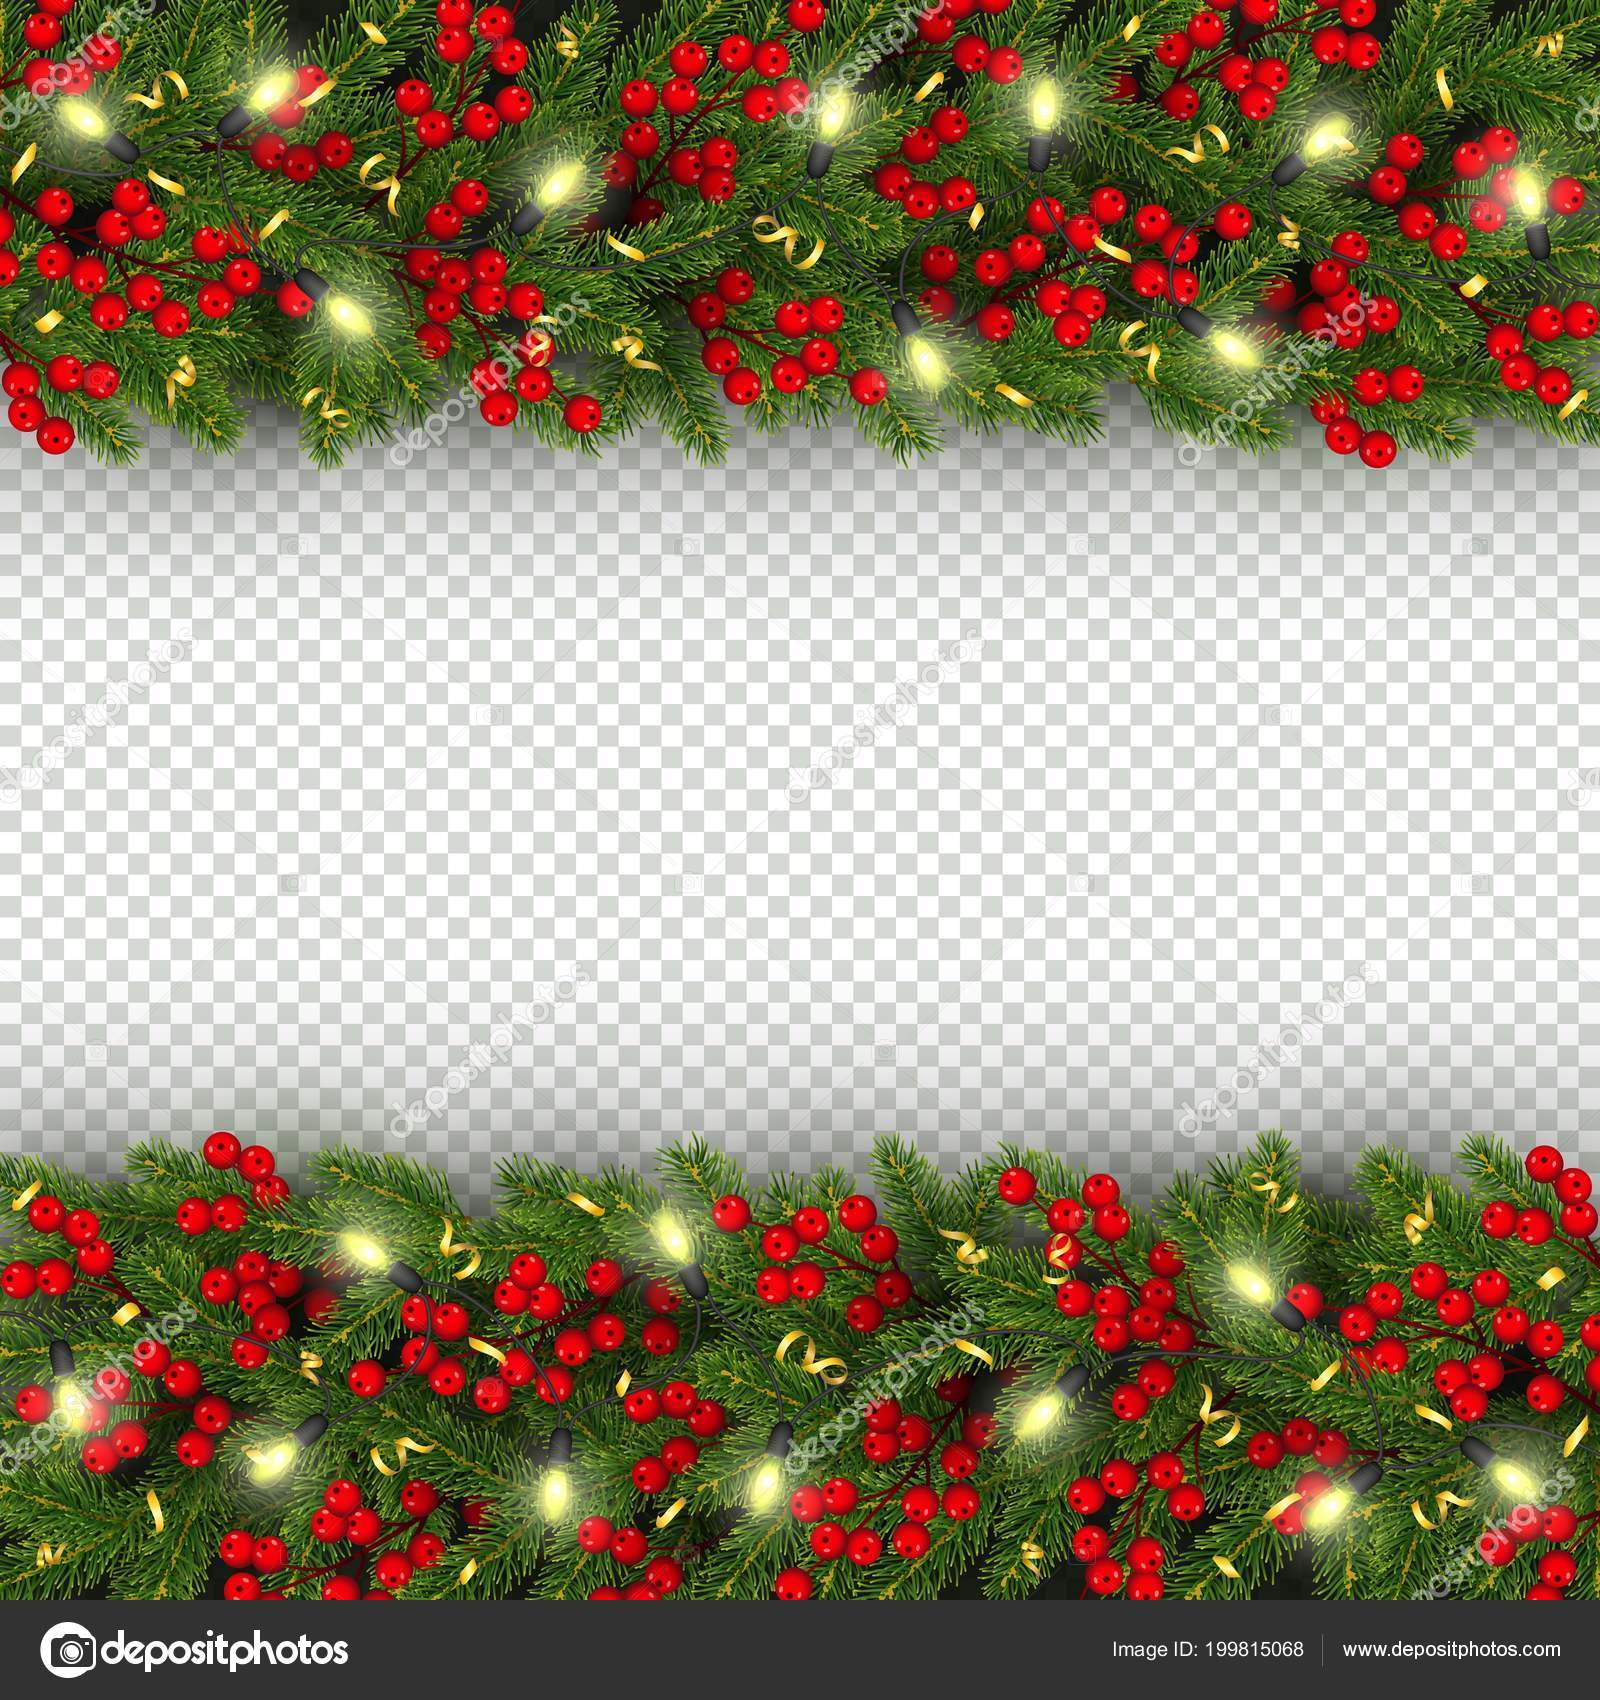 christmas and new year banner template with of horizontal realistic branches of christmas tree garland with glowing lightbulbs holly berries